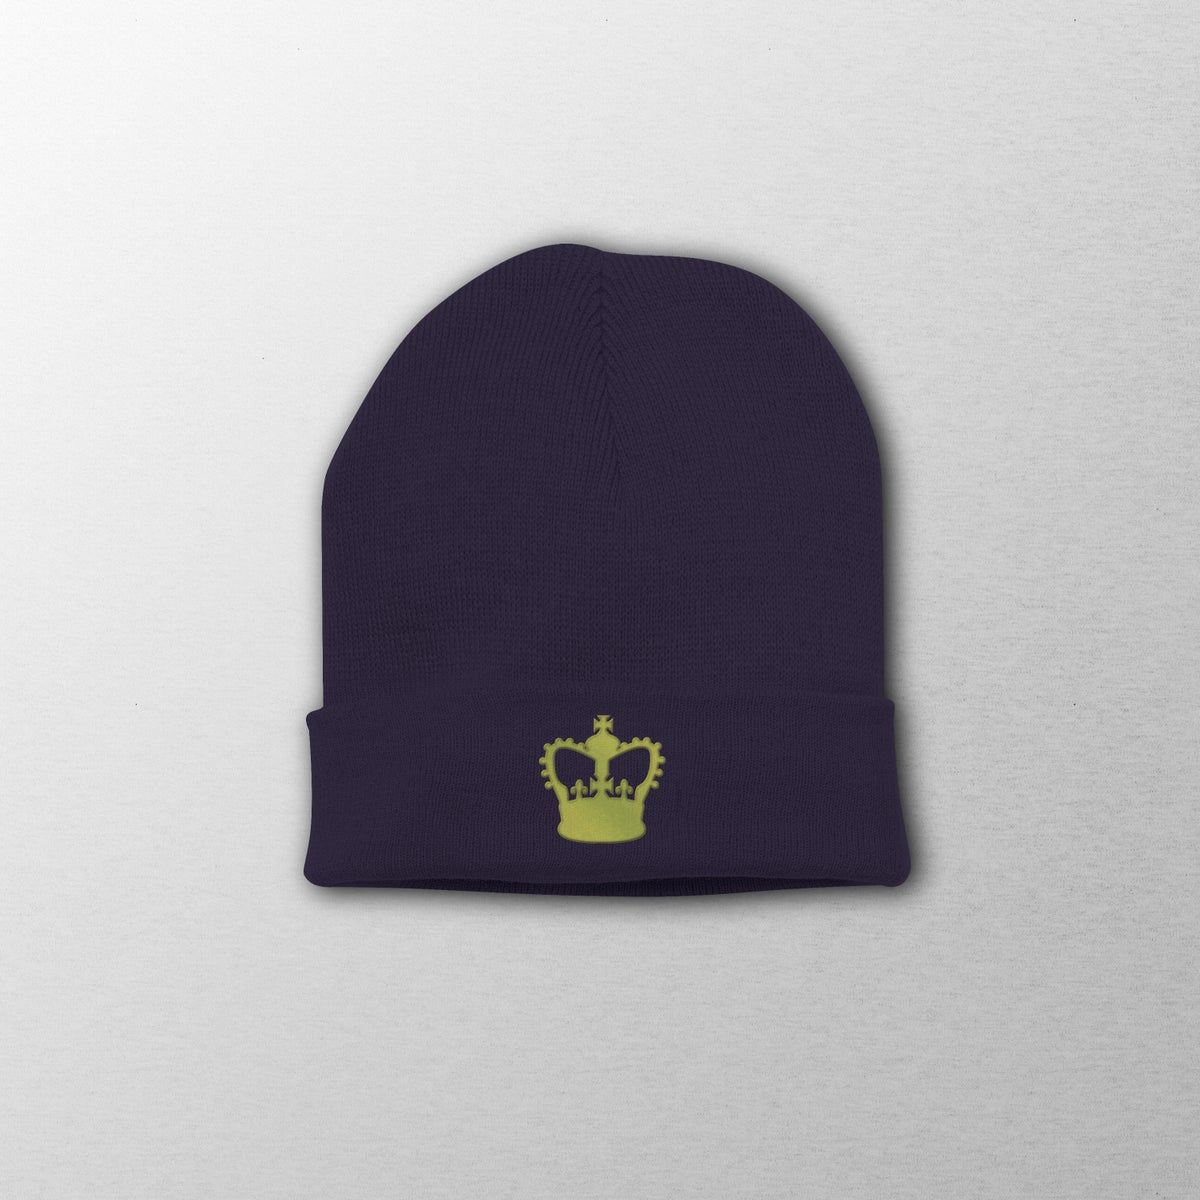 Image of Patrick Joseph Black Embroidered Crown Beanie Hat